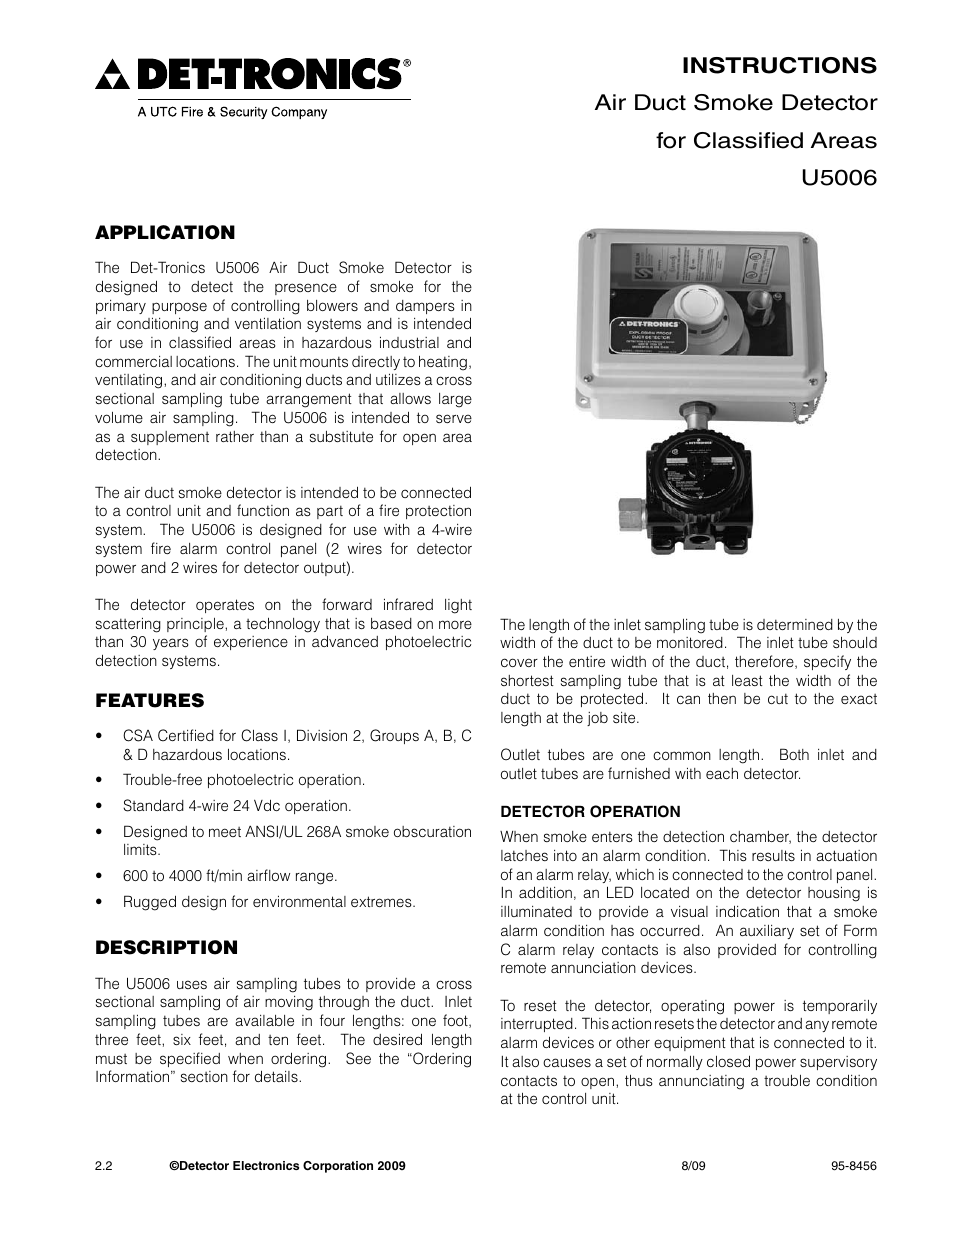 DetTronics U5006 Air    Duct       Smoke       Detector    User Manual   8